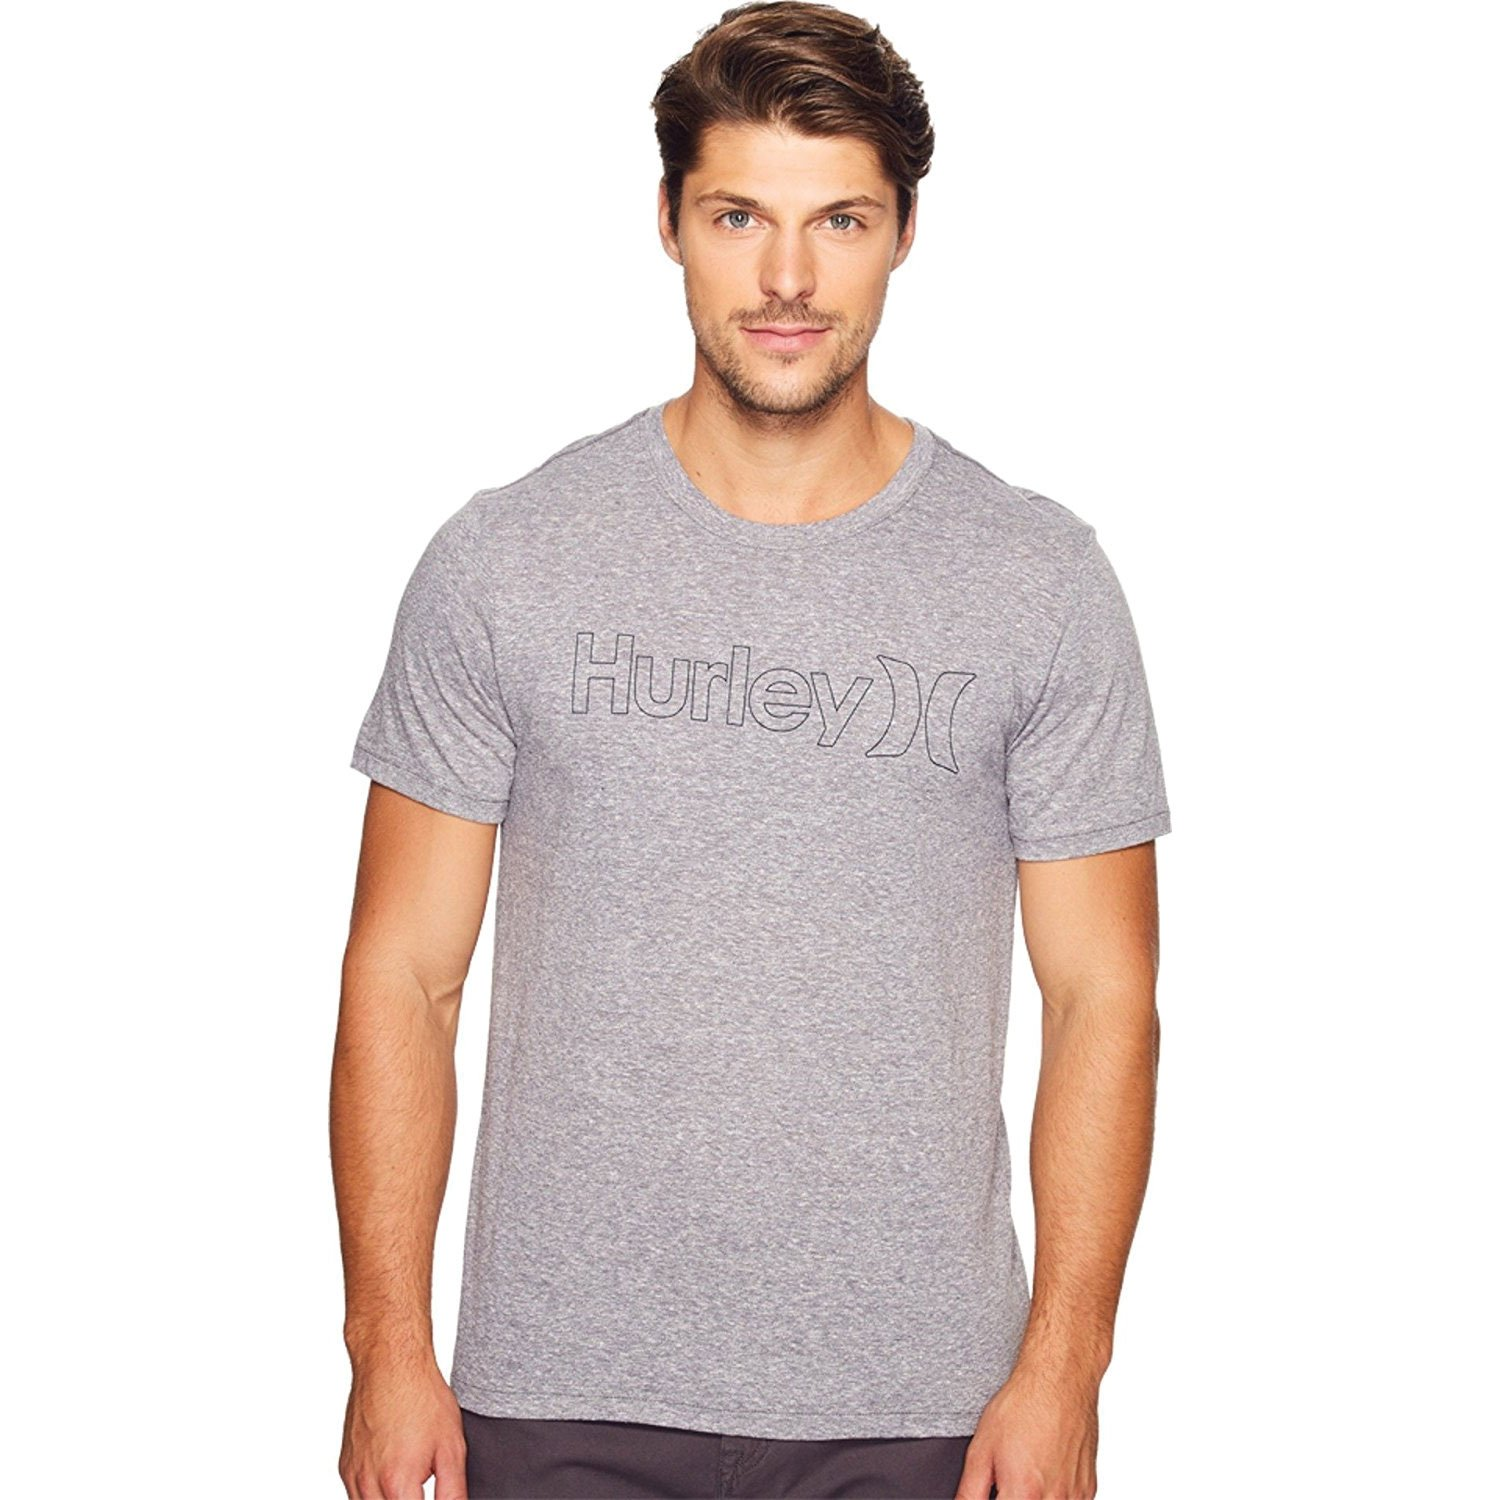 Hurley New One Only Outline Ss Tee 3364 Shirts